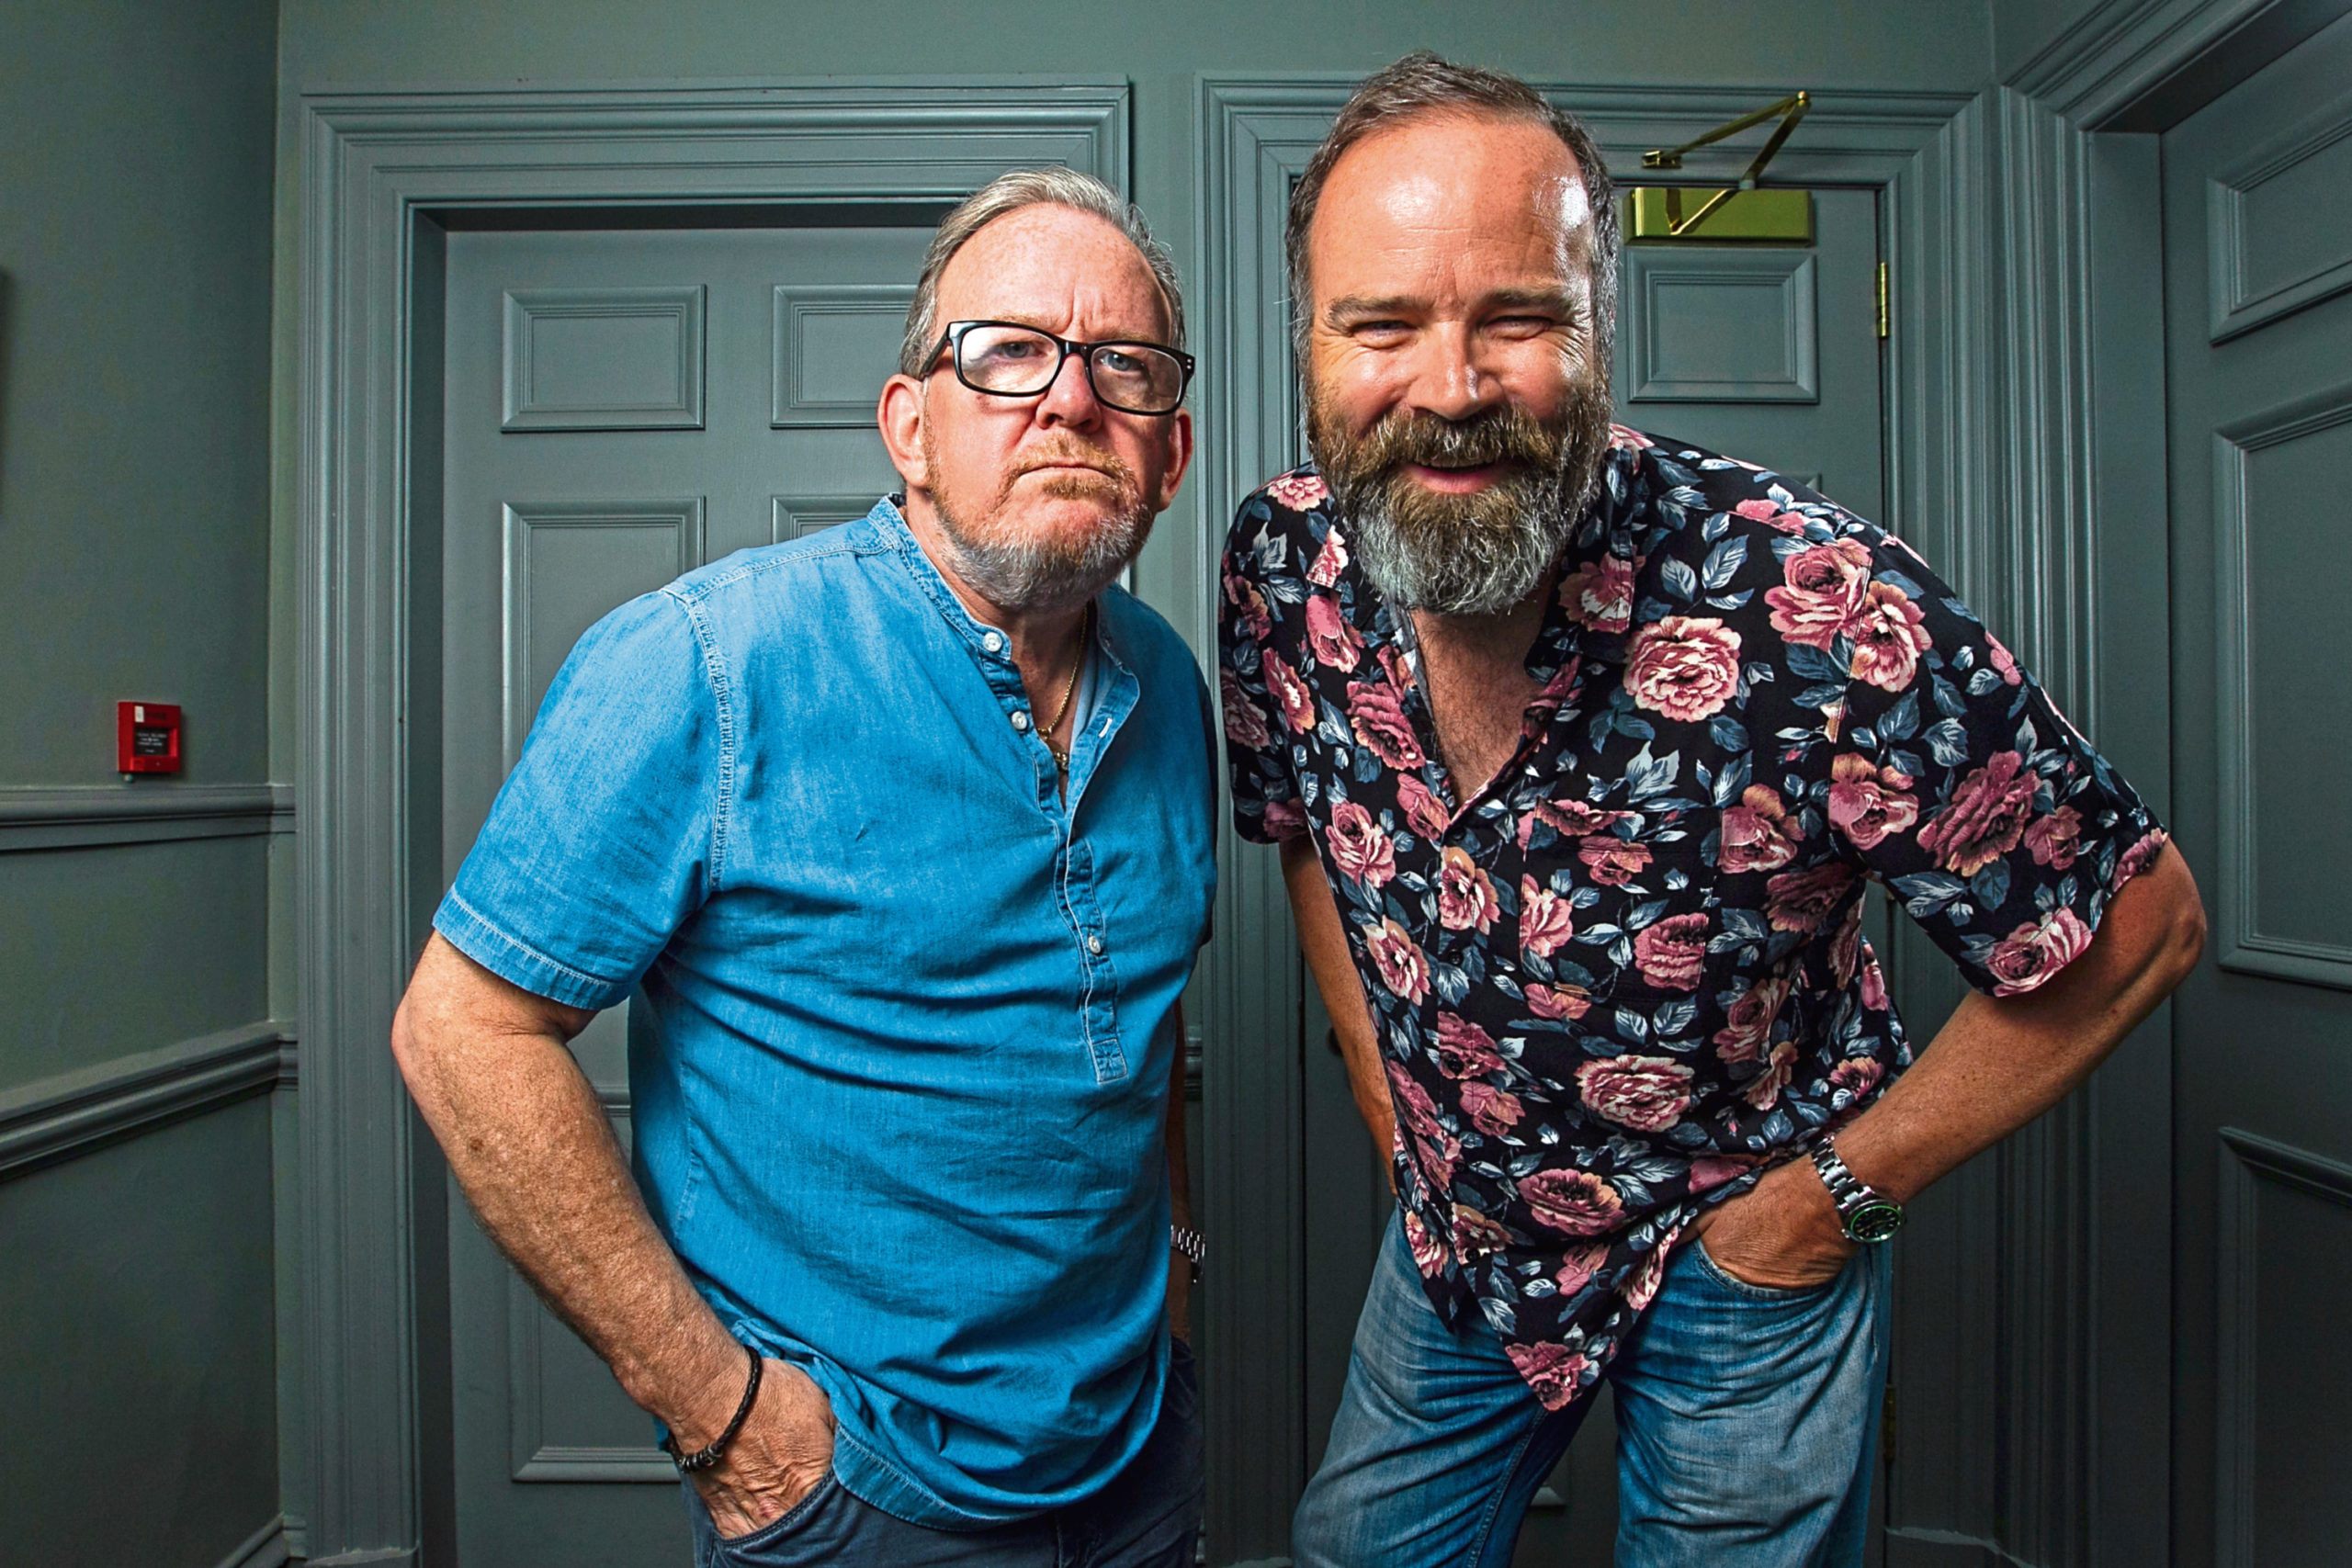 Ford Kiernan and Greg Hemphill, of comedy TV show Still Game.